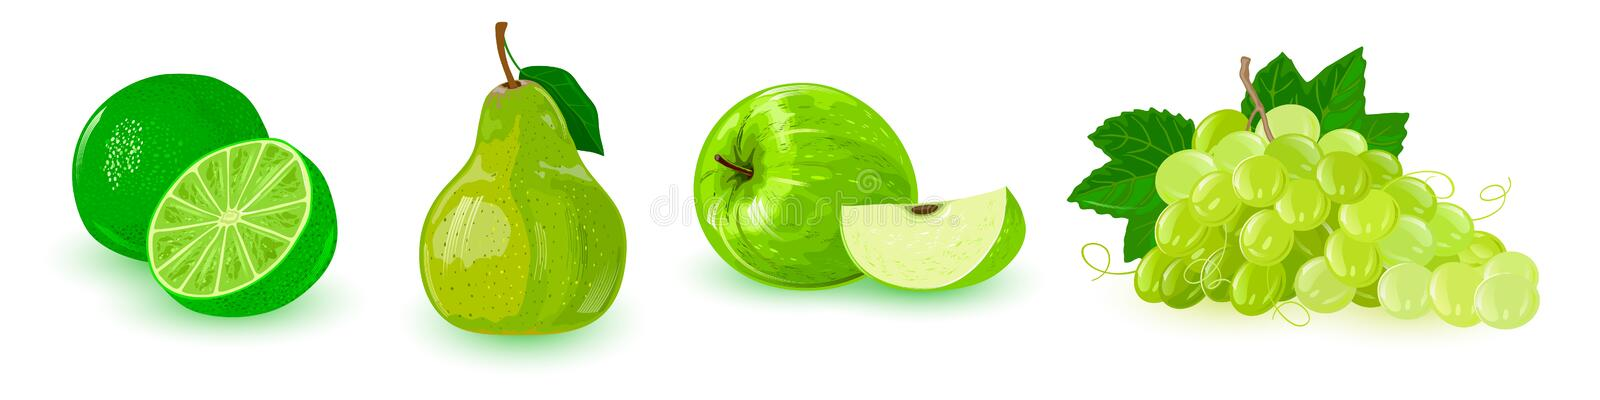 Set with green ripe fruits in line: apple, bunch of grapes, pear, lime. royalty free illustration